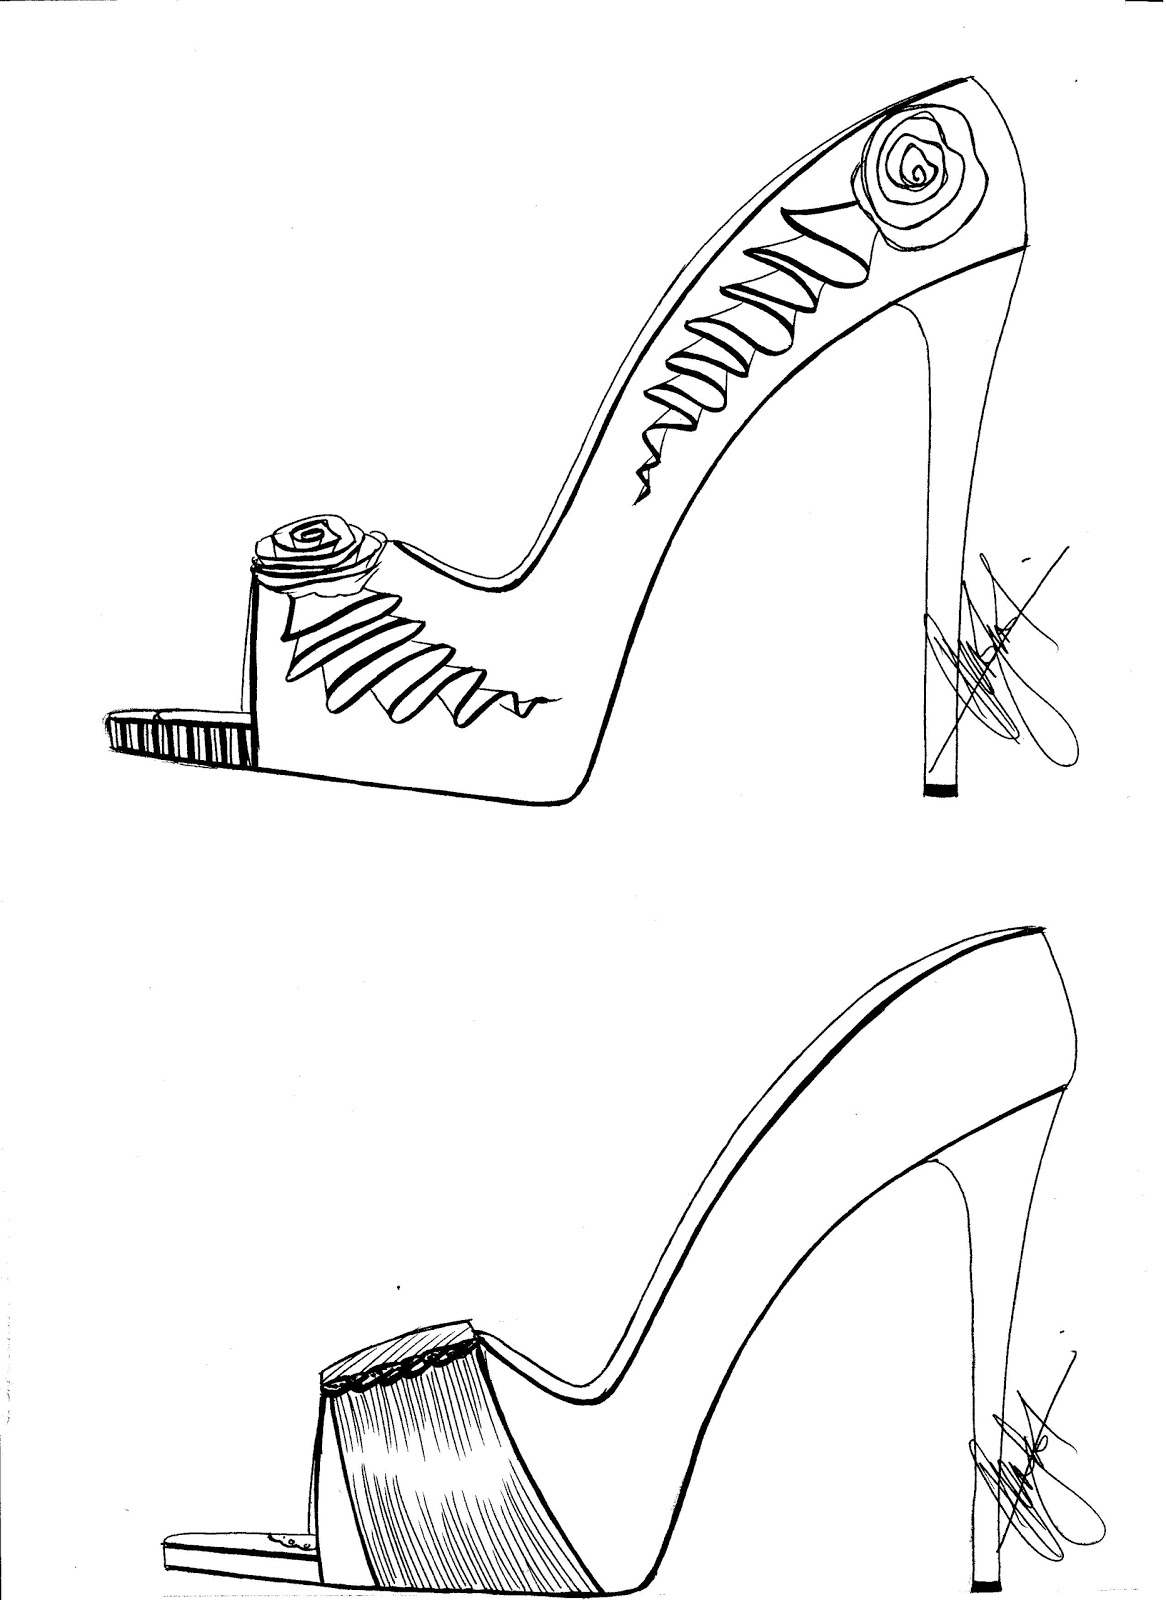 sketches of high heels stunning quothigh heelsquot drawings and illustrations for sale heels of high sketches